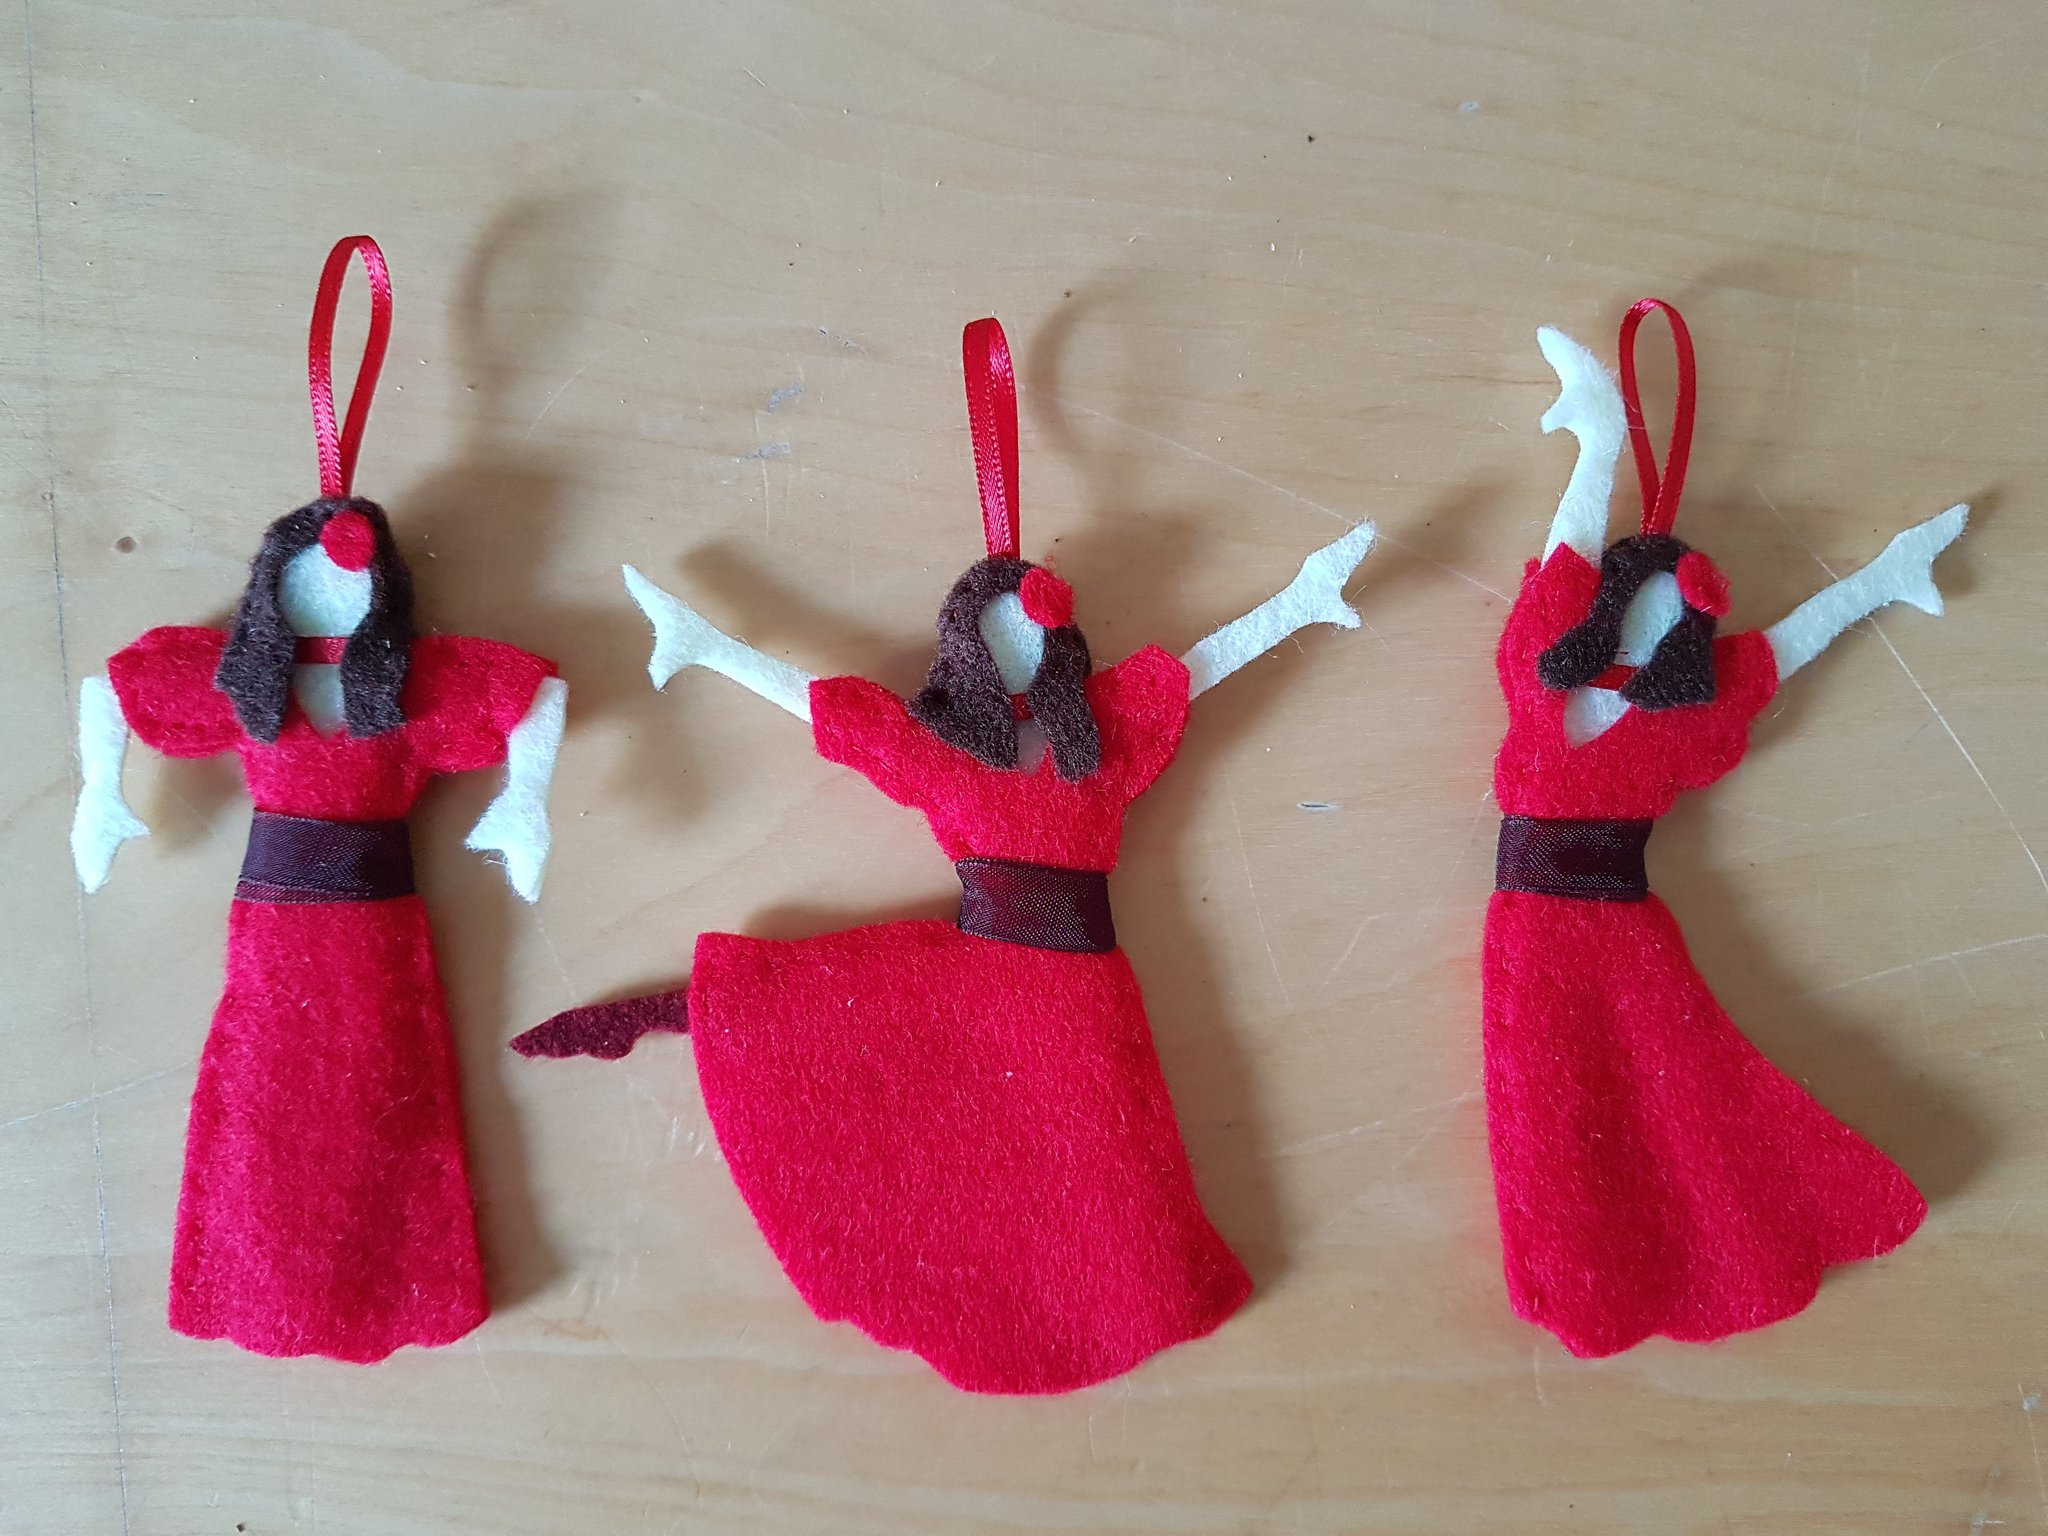 A photograph of three Christmas tree ornaments, each a little felt model of Kate Bush in a dancing pose, dressed as she appears in the video of her song 'Wuthering Heights'.